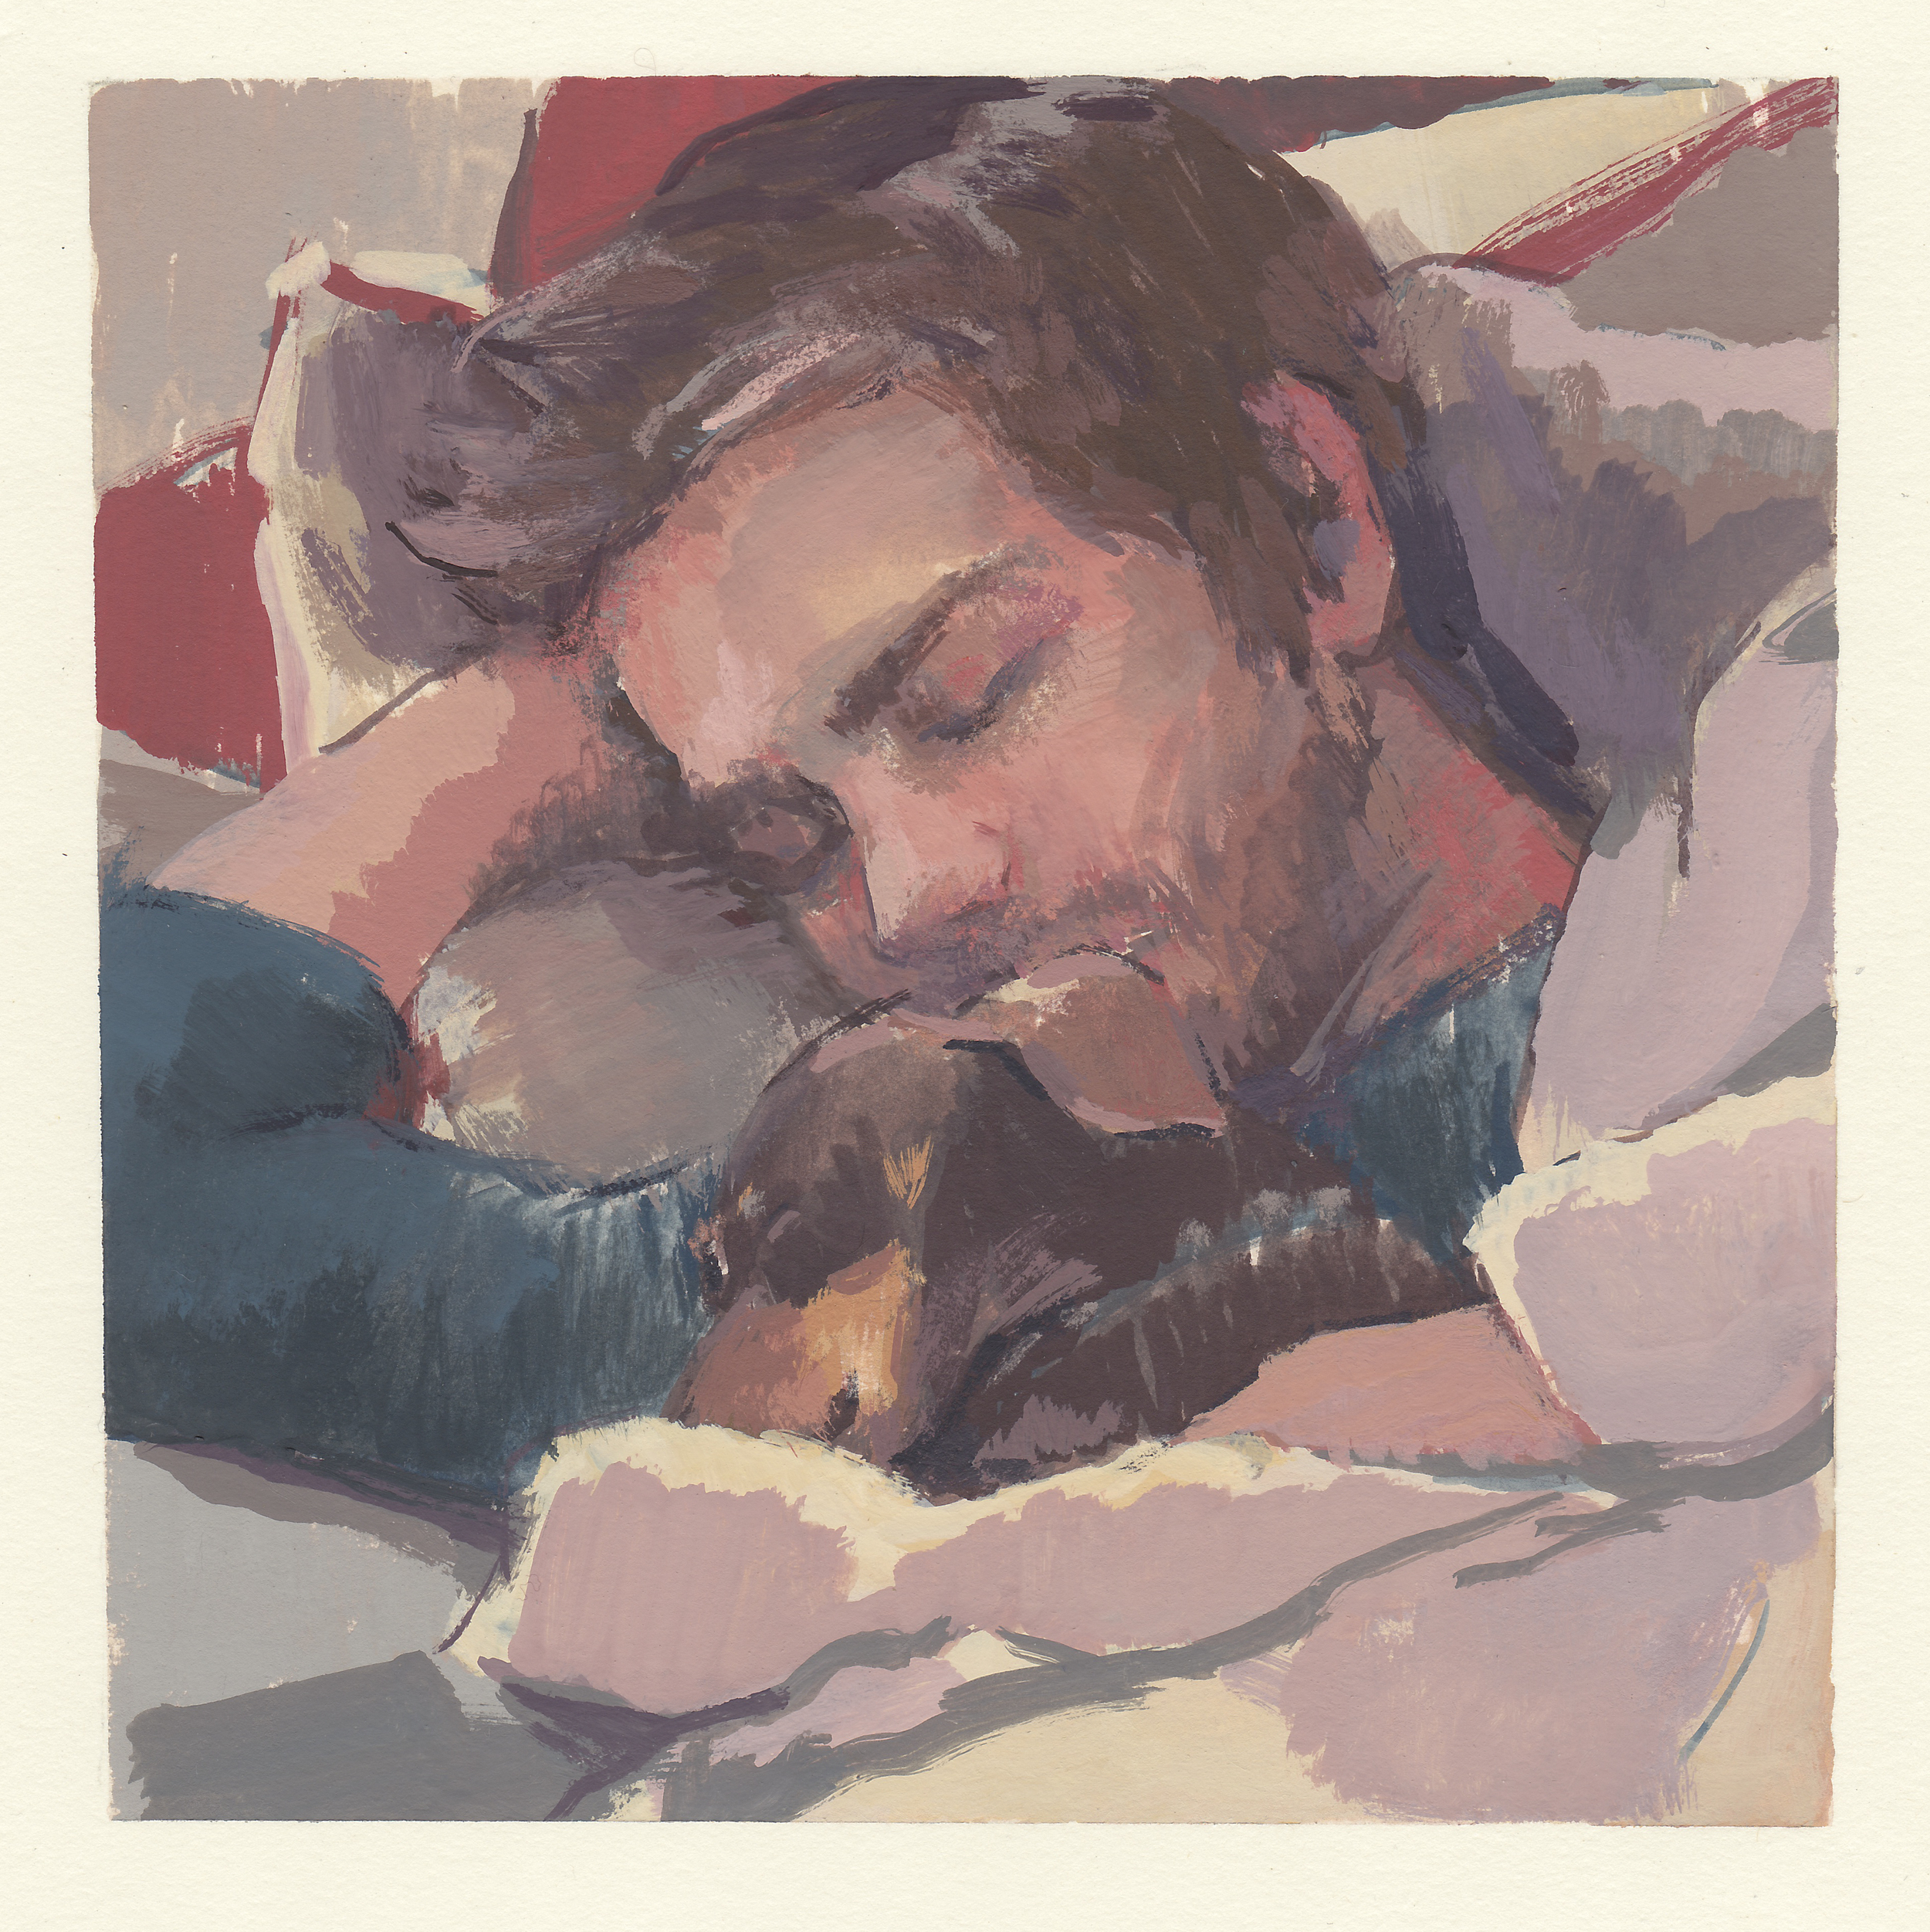 "Robert & Bailey  watercolor and gouache on paper 5.75x5.75"" 2014  private collection Nashville, TN"